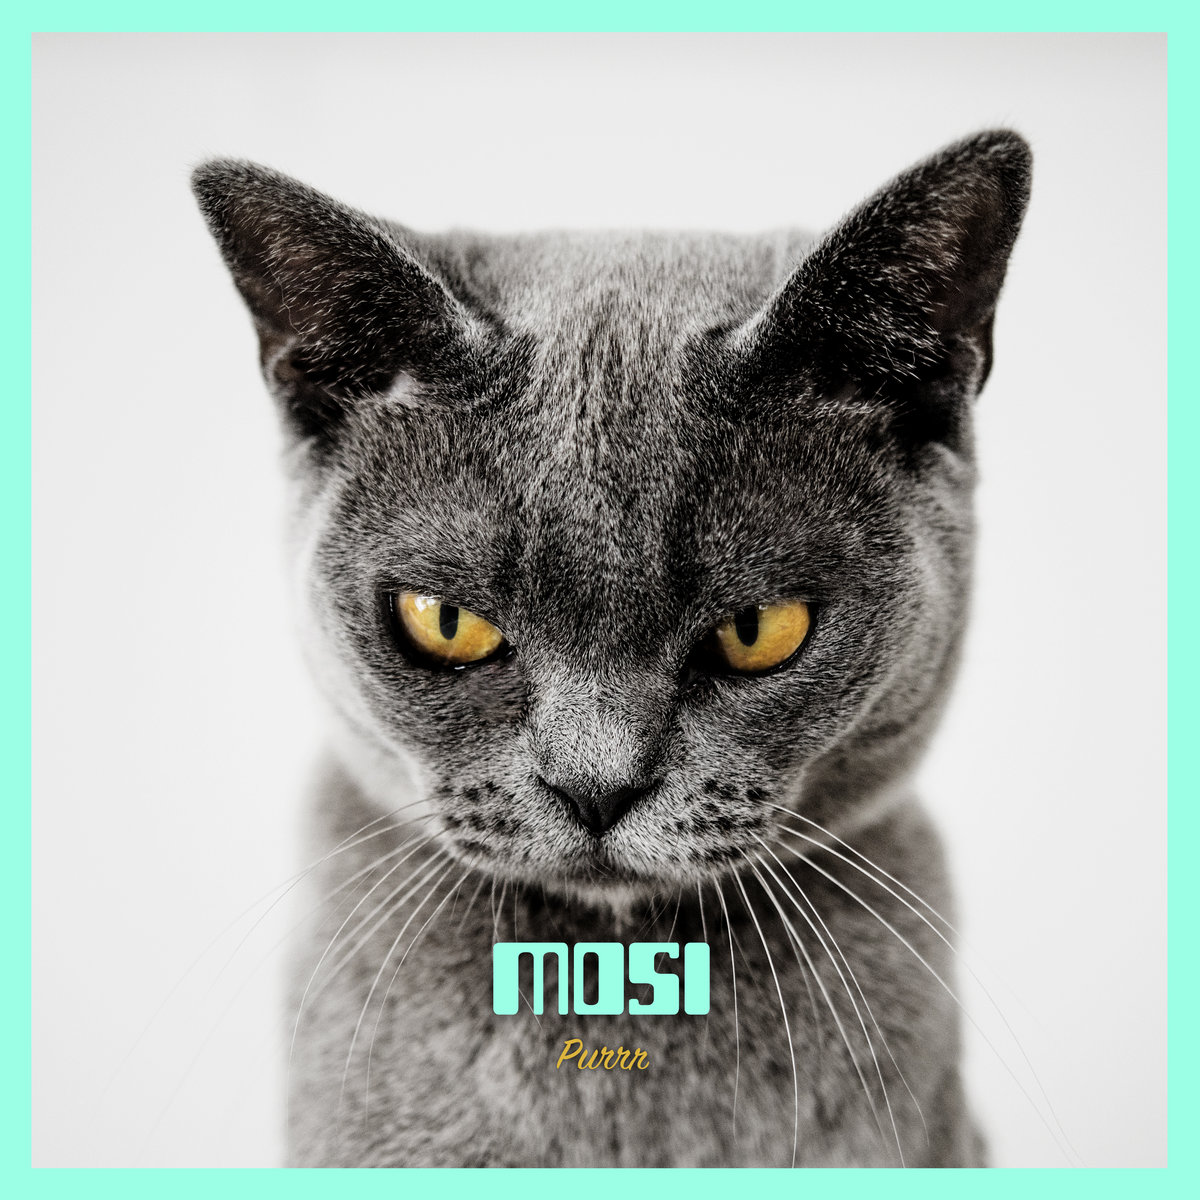 Purrr by Mosi